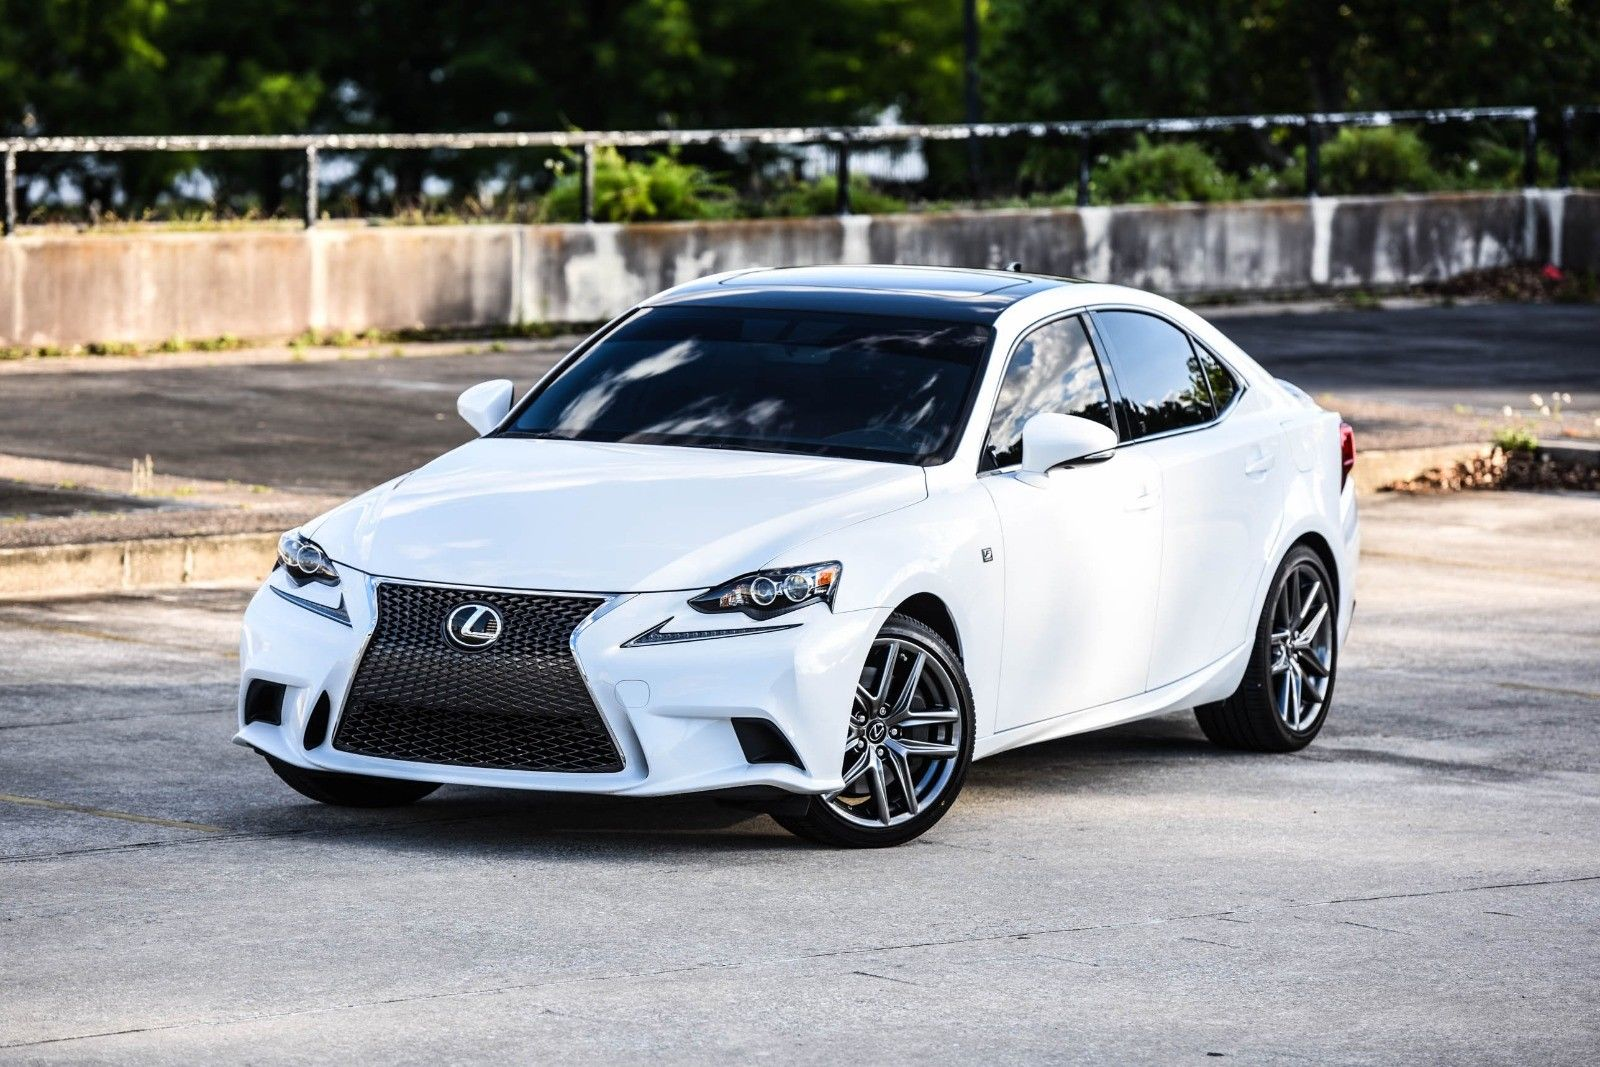 2015 lexus is 350 2015 lexus is350 f-sport awd 2019